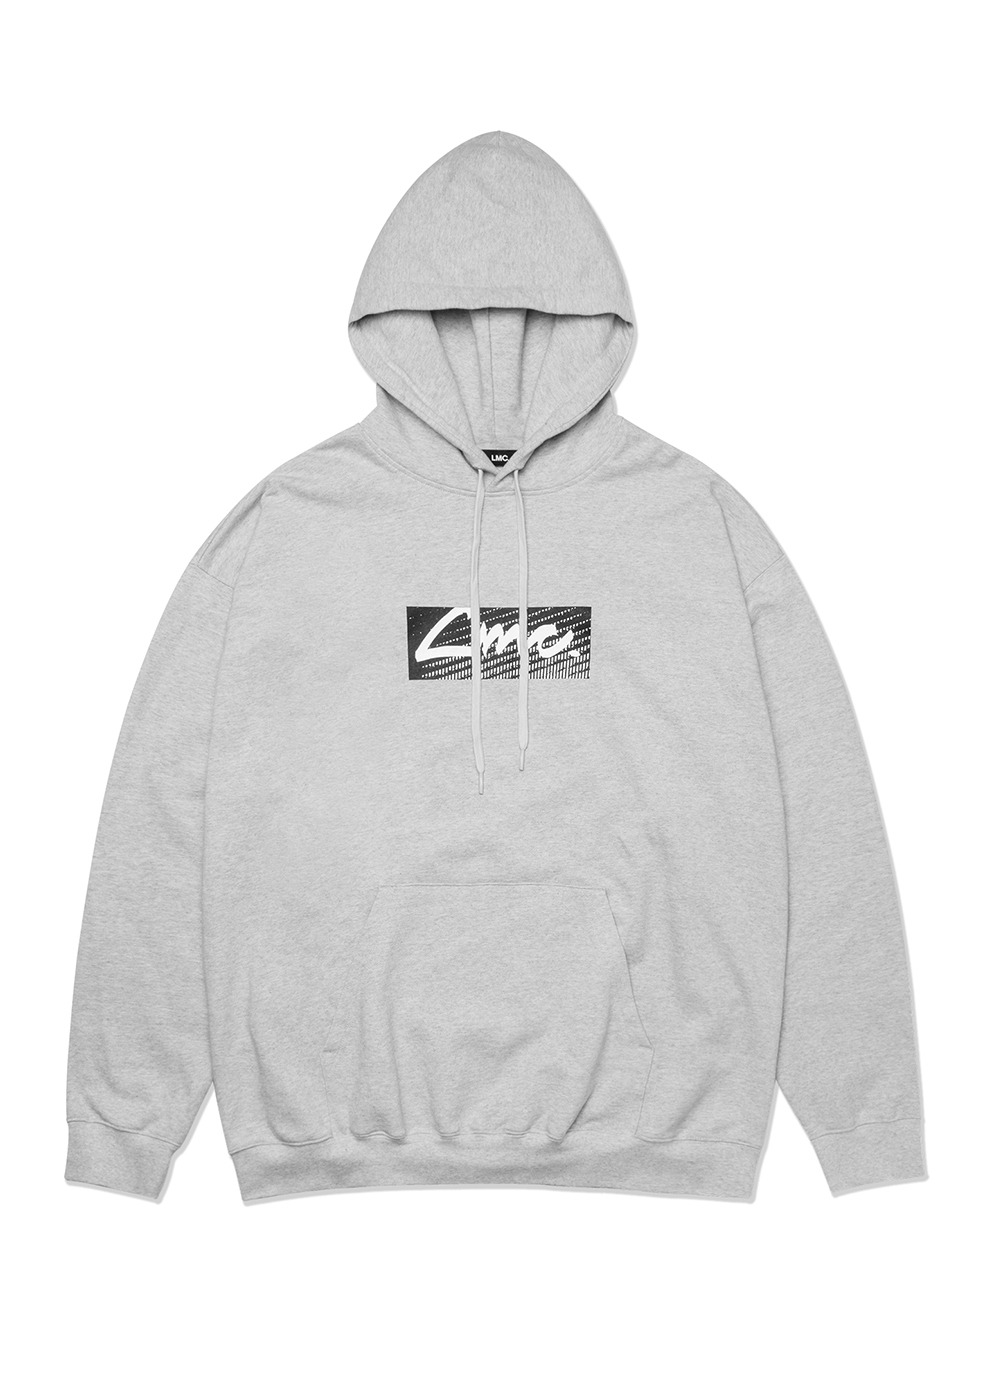 LMC D-NOISE OVERSIZED HOODIE heather gray